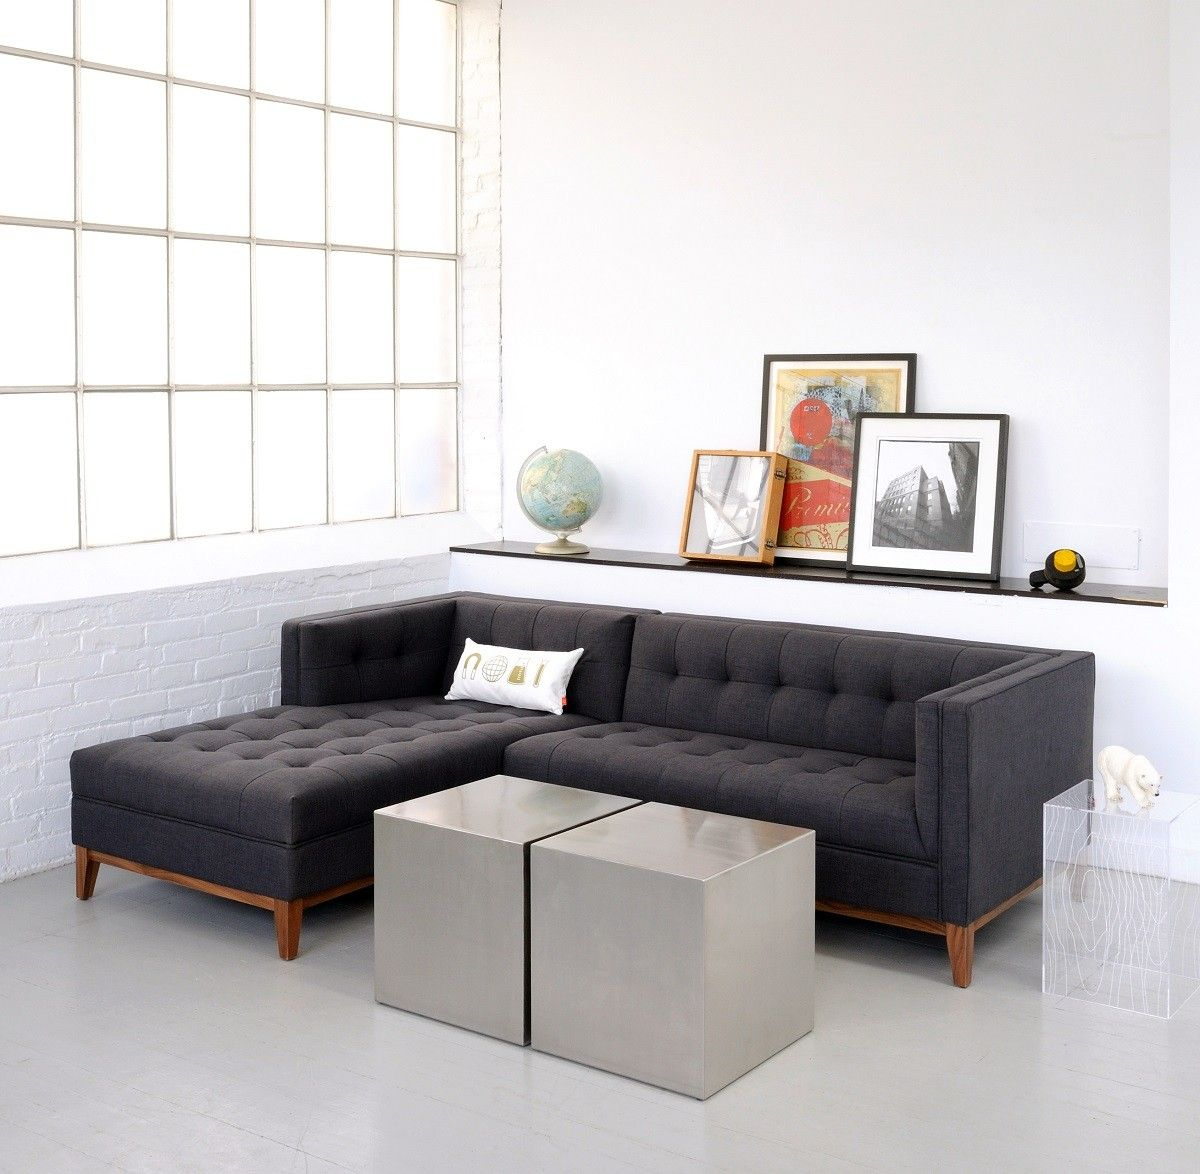 Gus Modern Atwood Sectional Sofa The Atwood Sectional Sofa Is Clean Lined Tailored Design Living Room Designs Apartment Size Furniture Sofas For Small Spaces